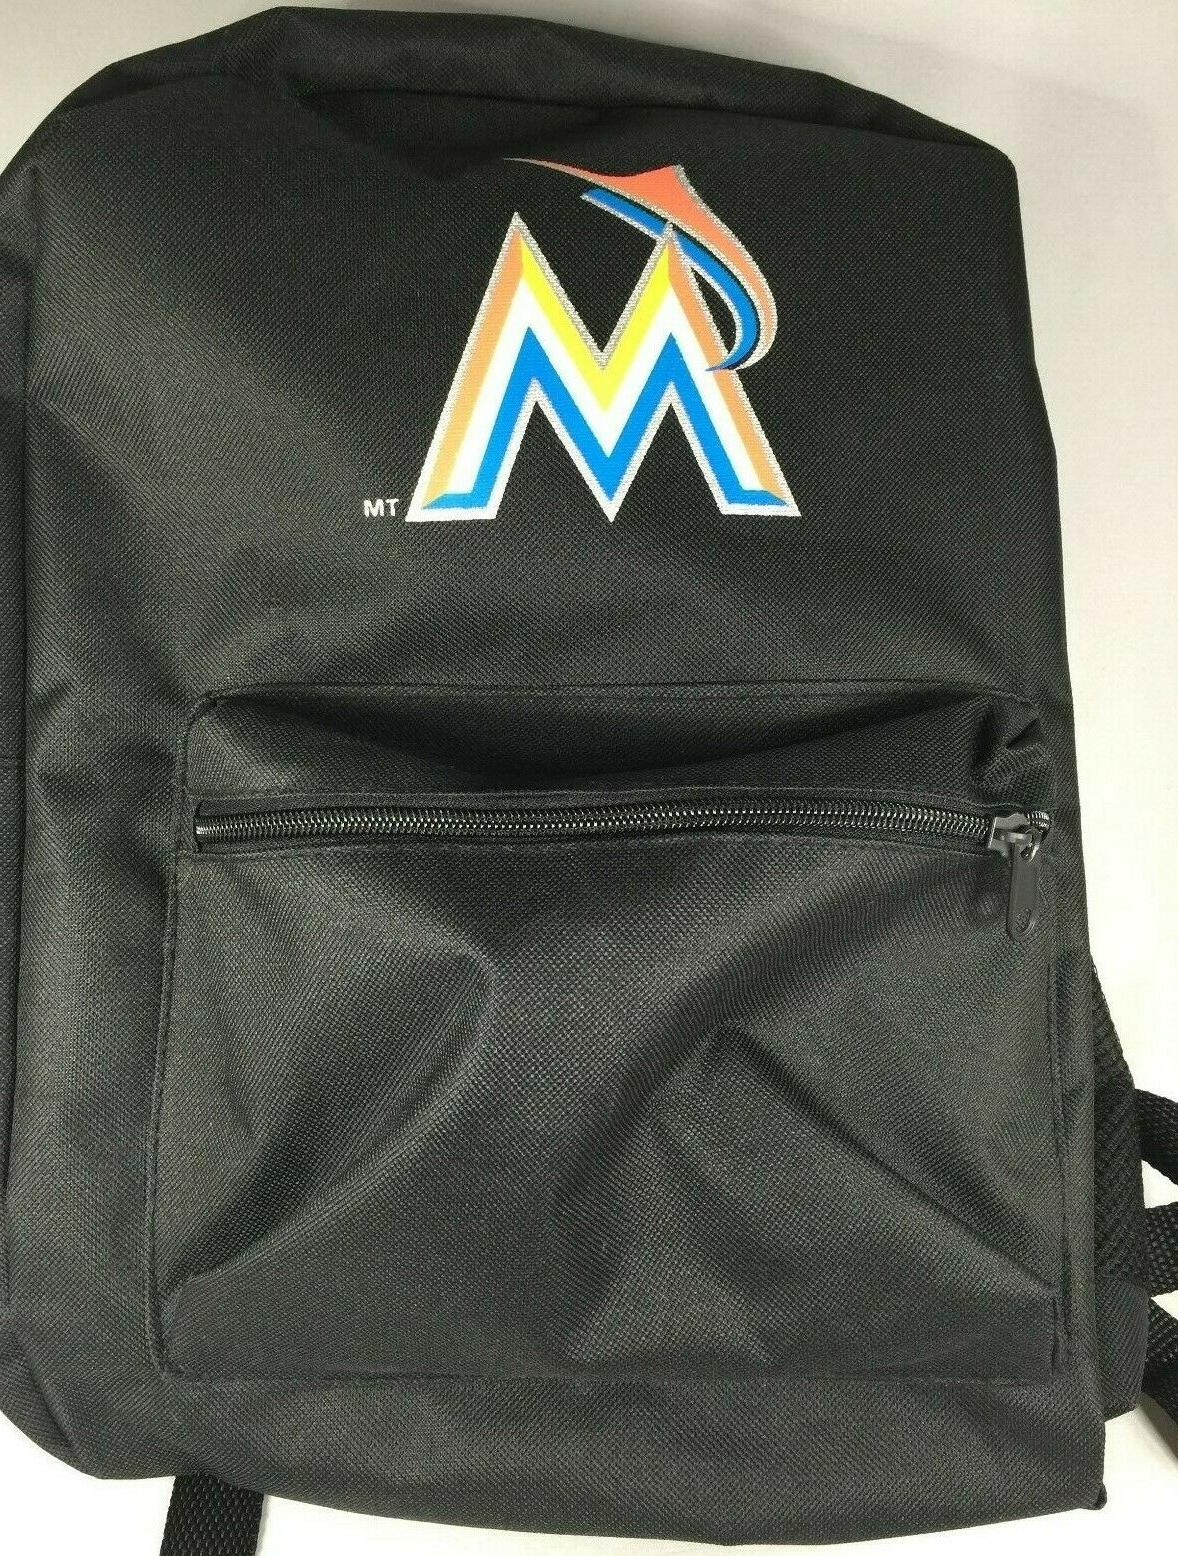 mlb miami marlins backpack new with tags